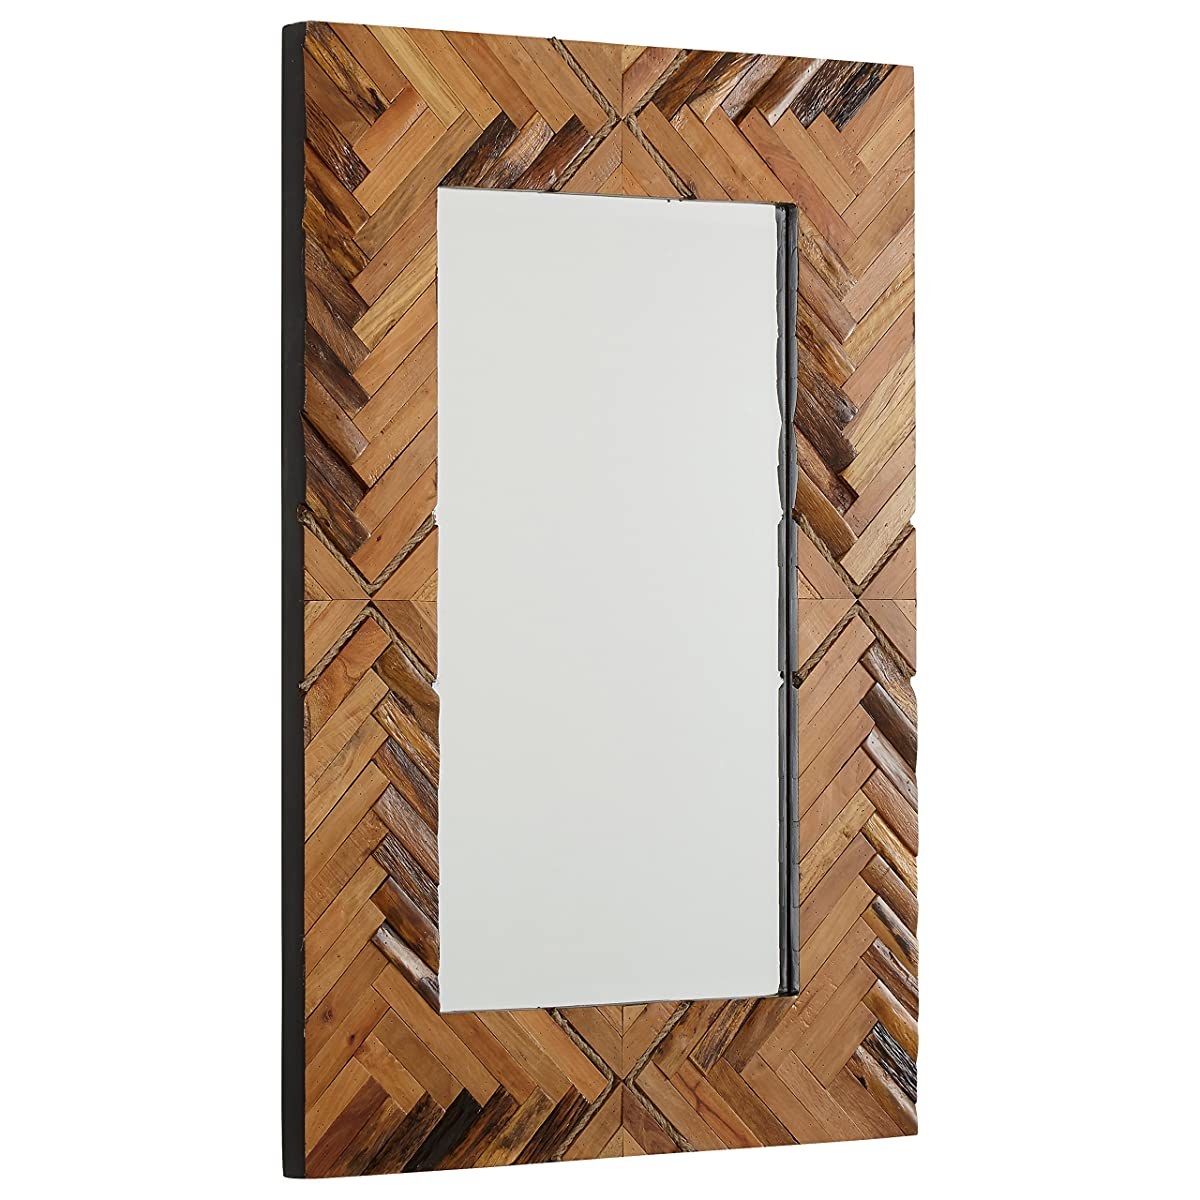 "Stone & Beam Rustic Wood and Rope Geo Mirror, 36"" H, Natural"